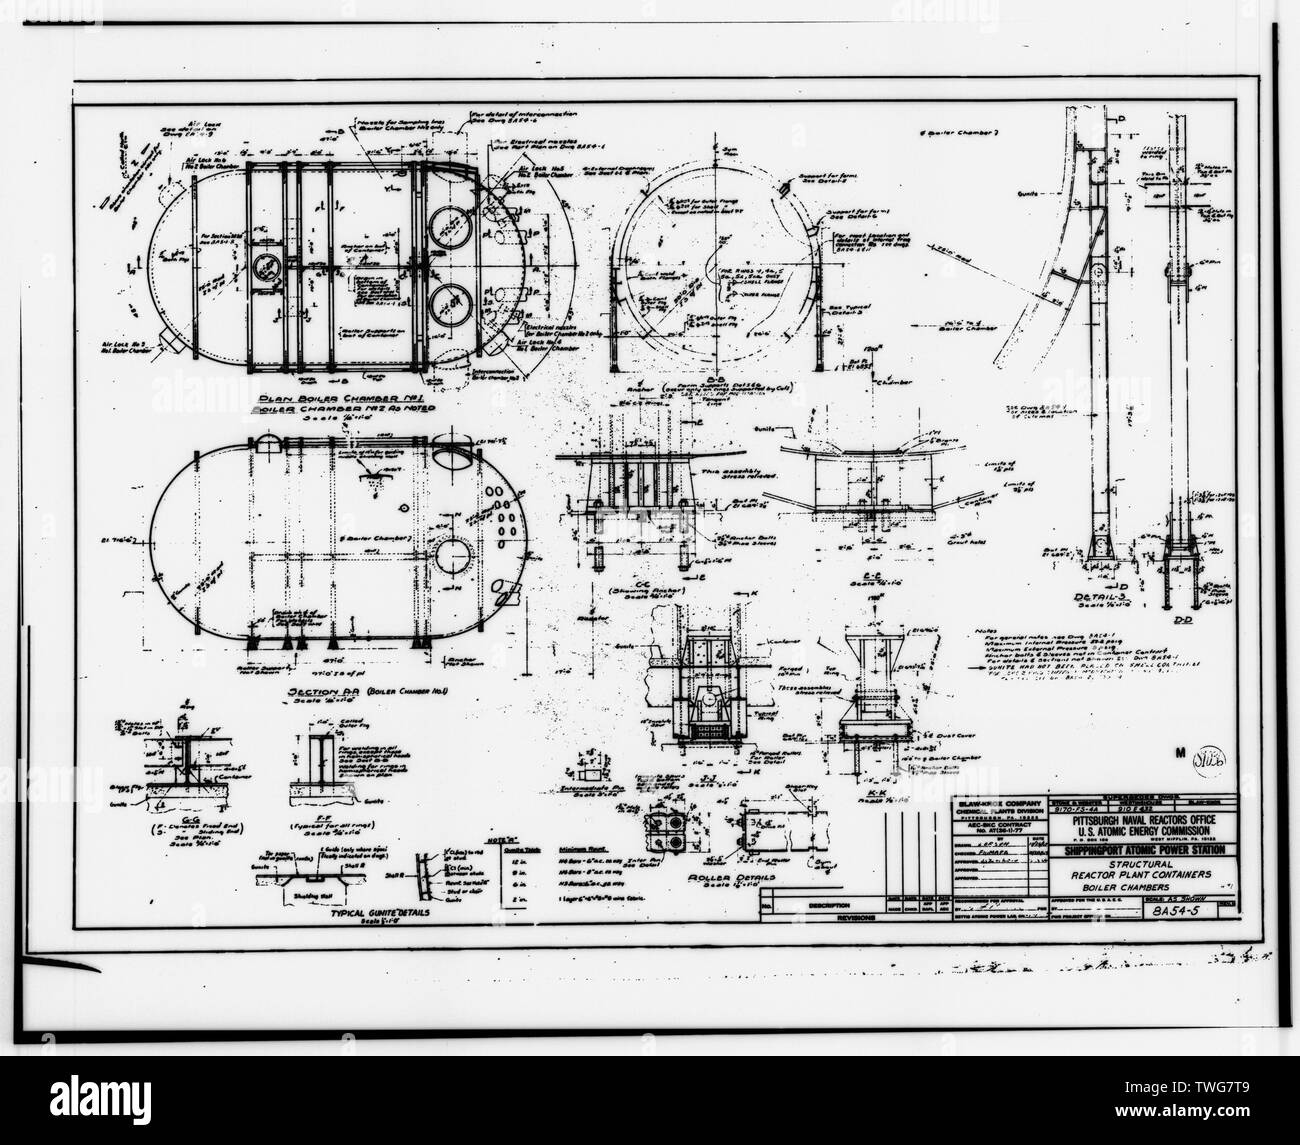 Combustion Boiler Stock Photos & Combustion Boiler Stock ... on